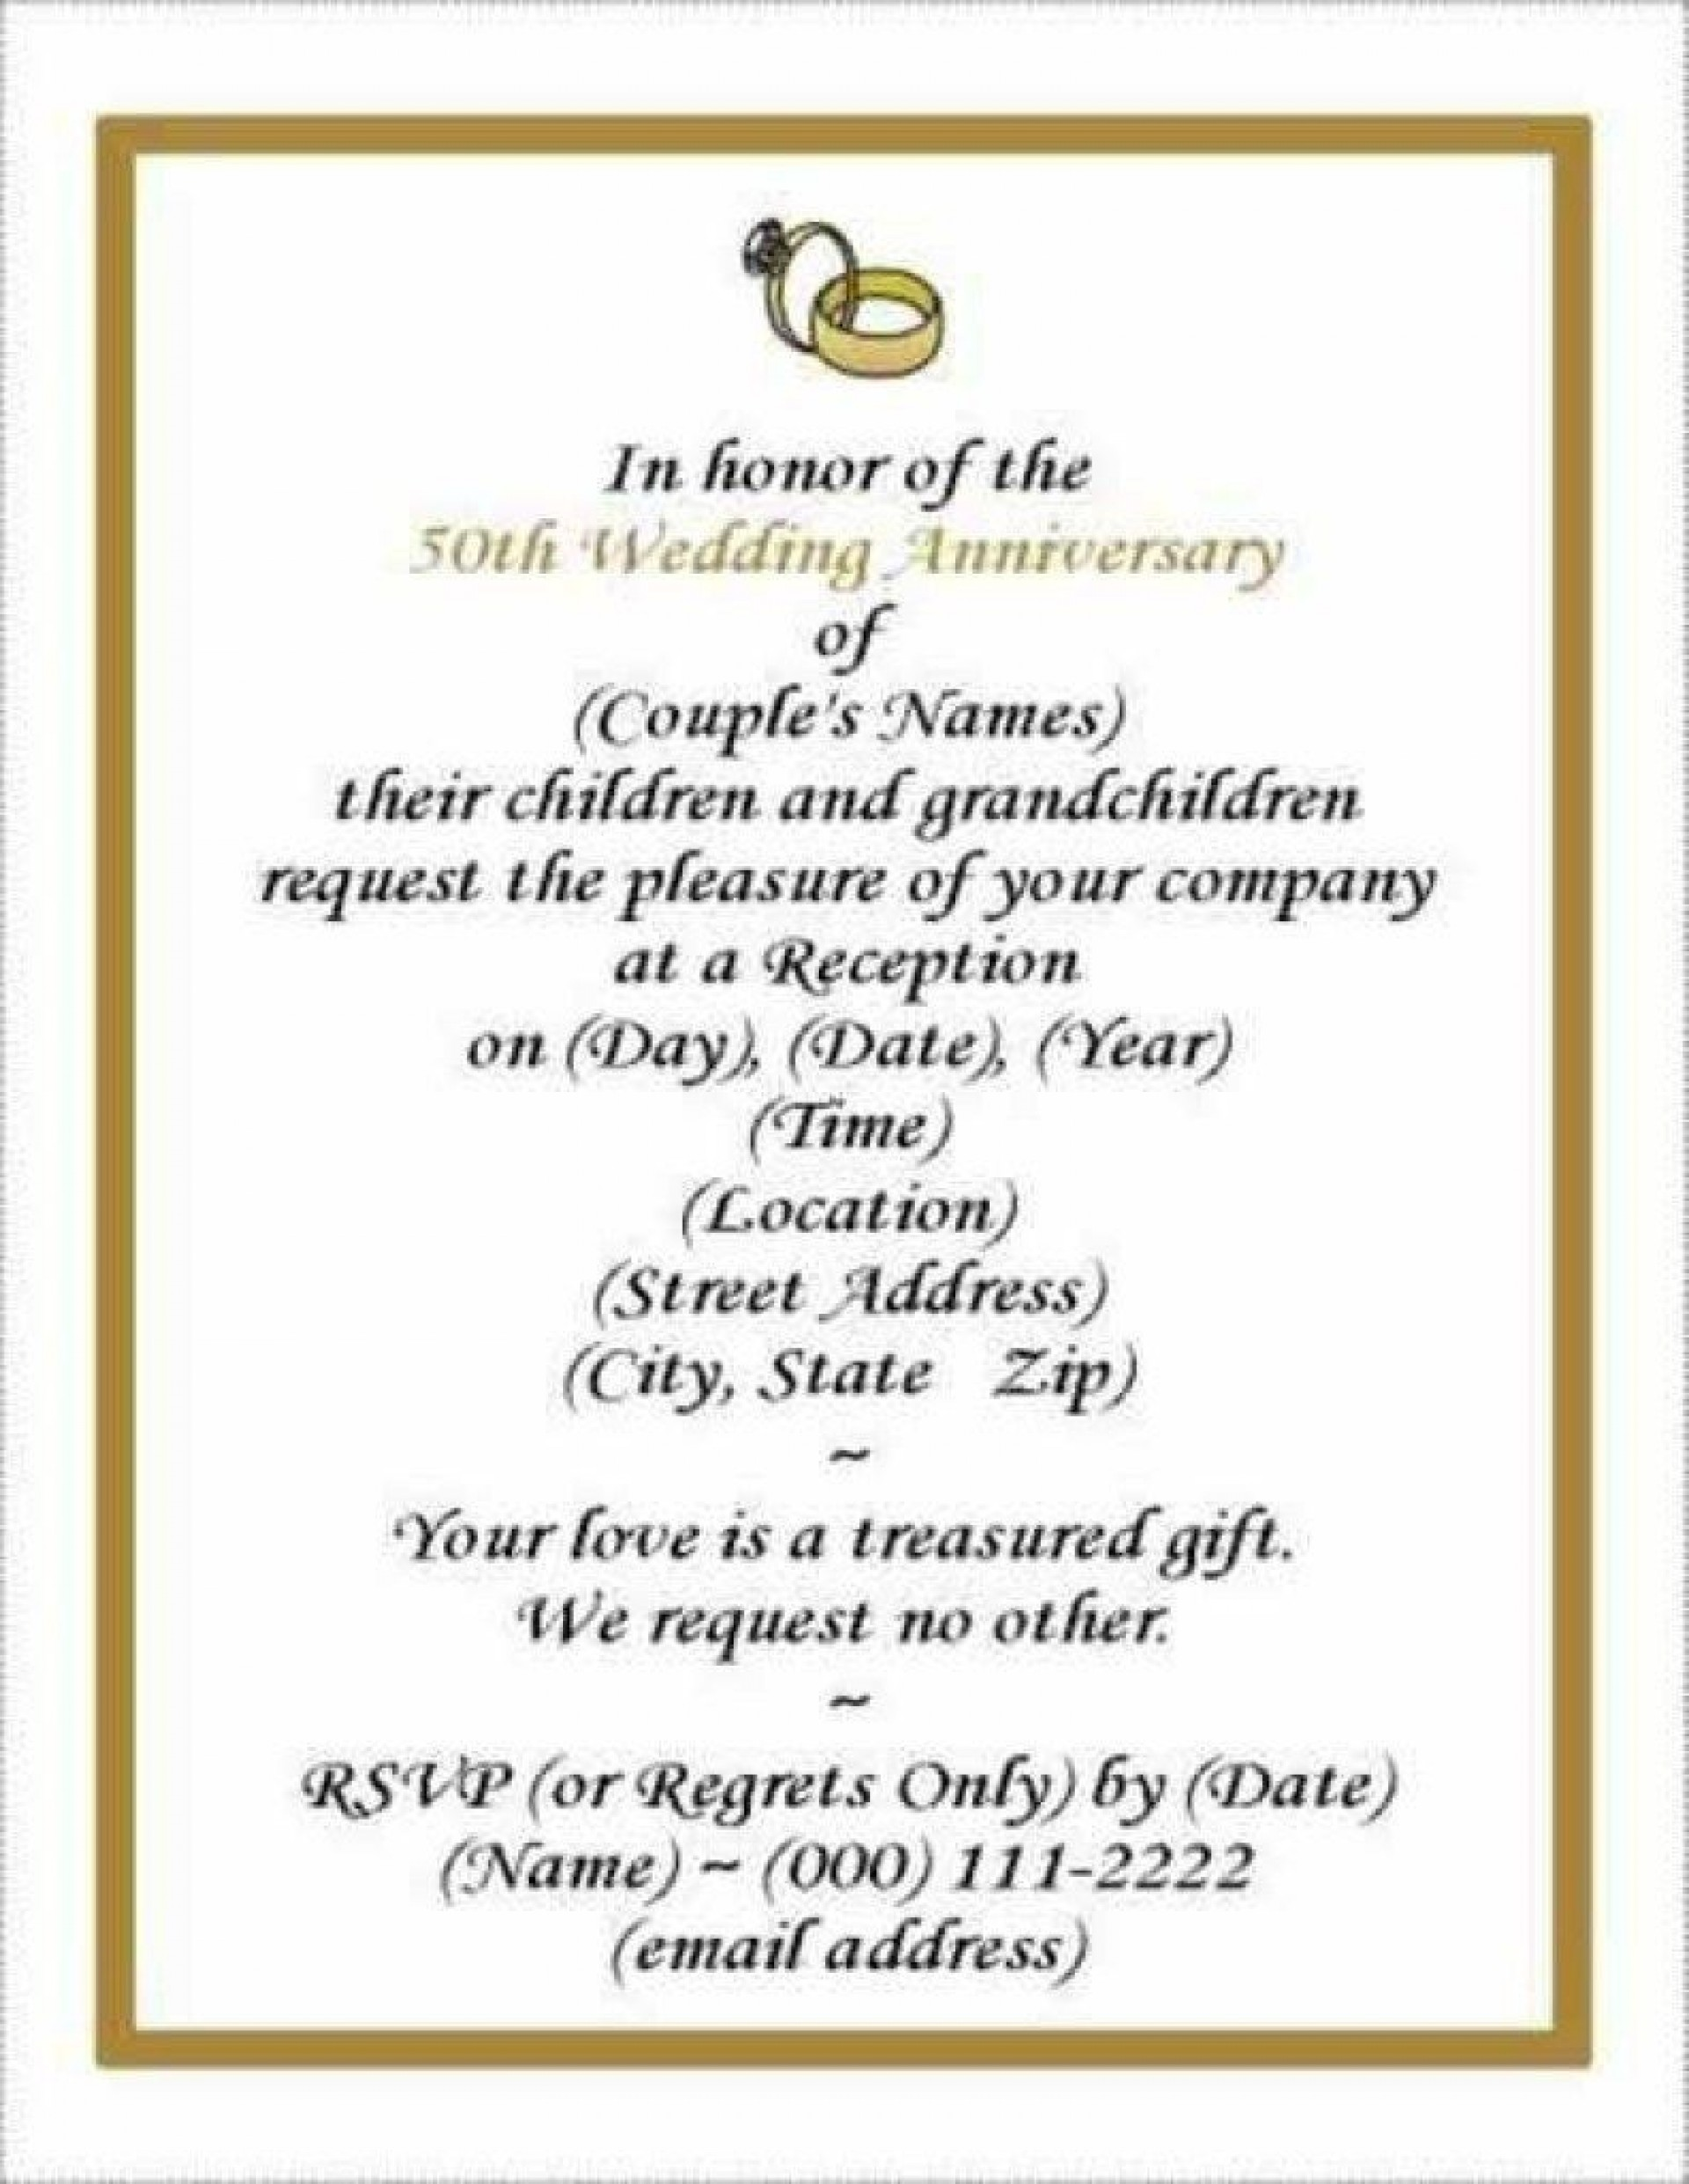 006 Wonderful 50th Wedding Anniversary Invitation Template Free Download Picture  Golden1920